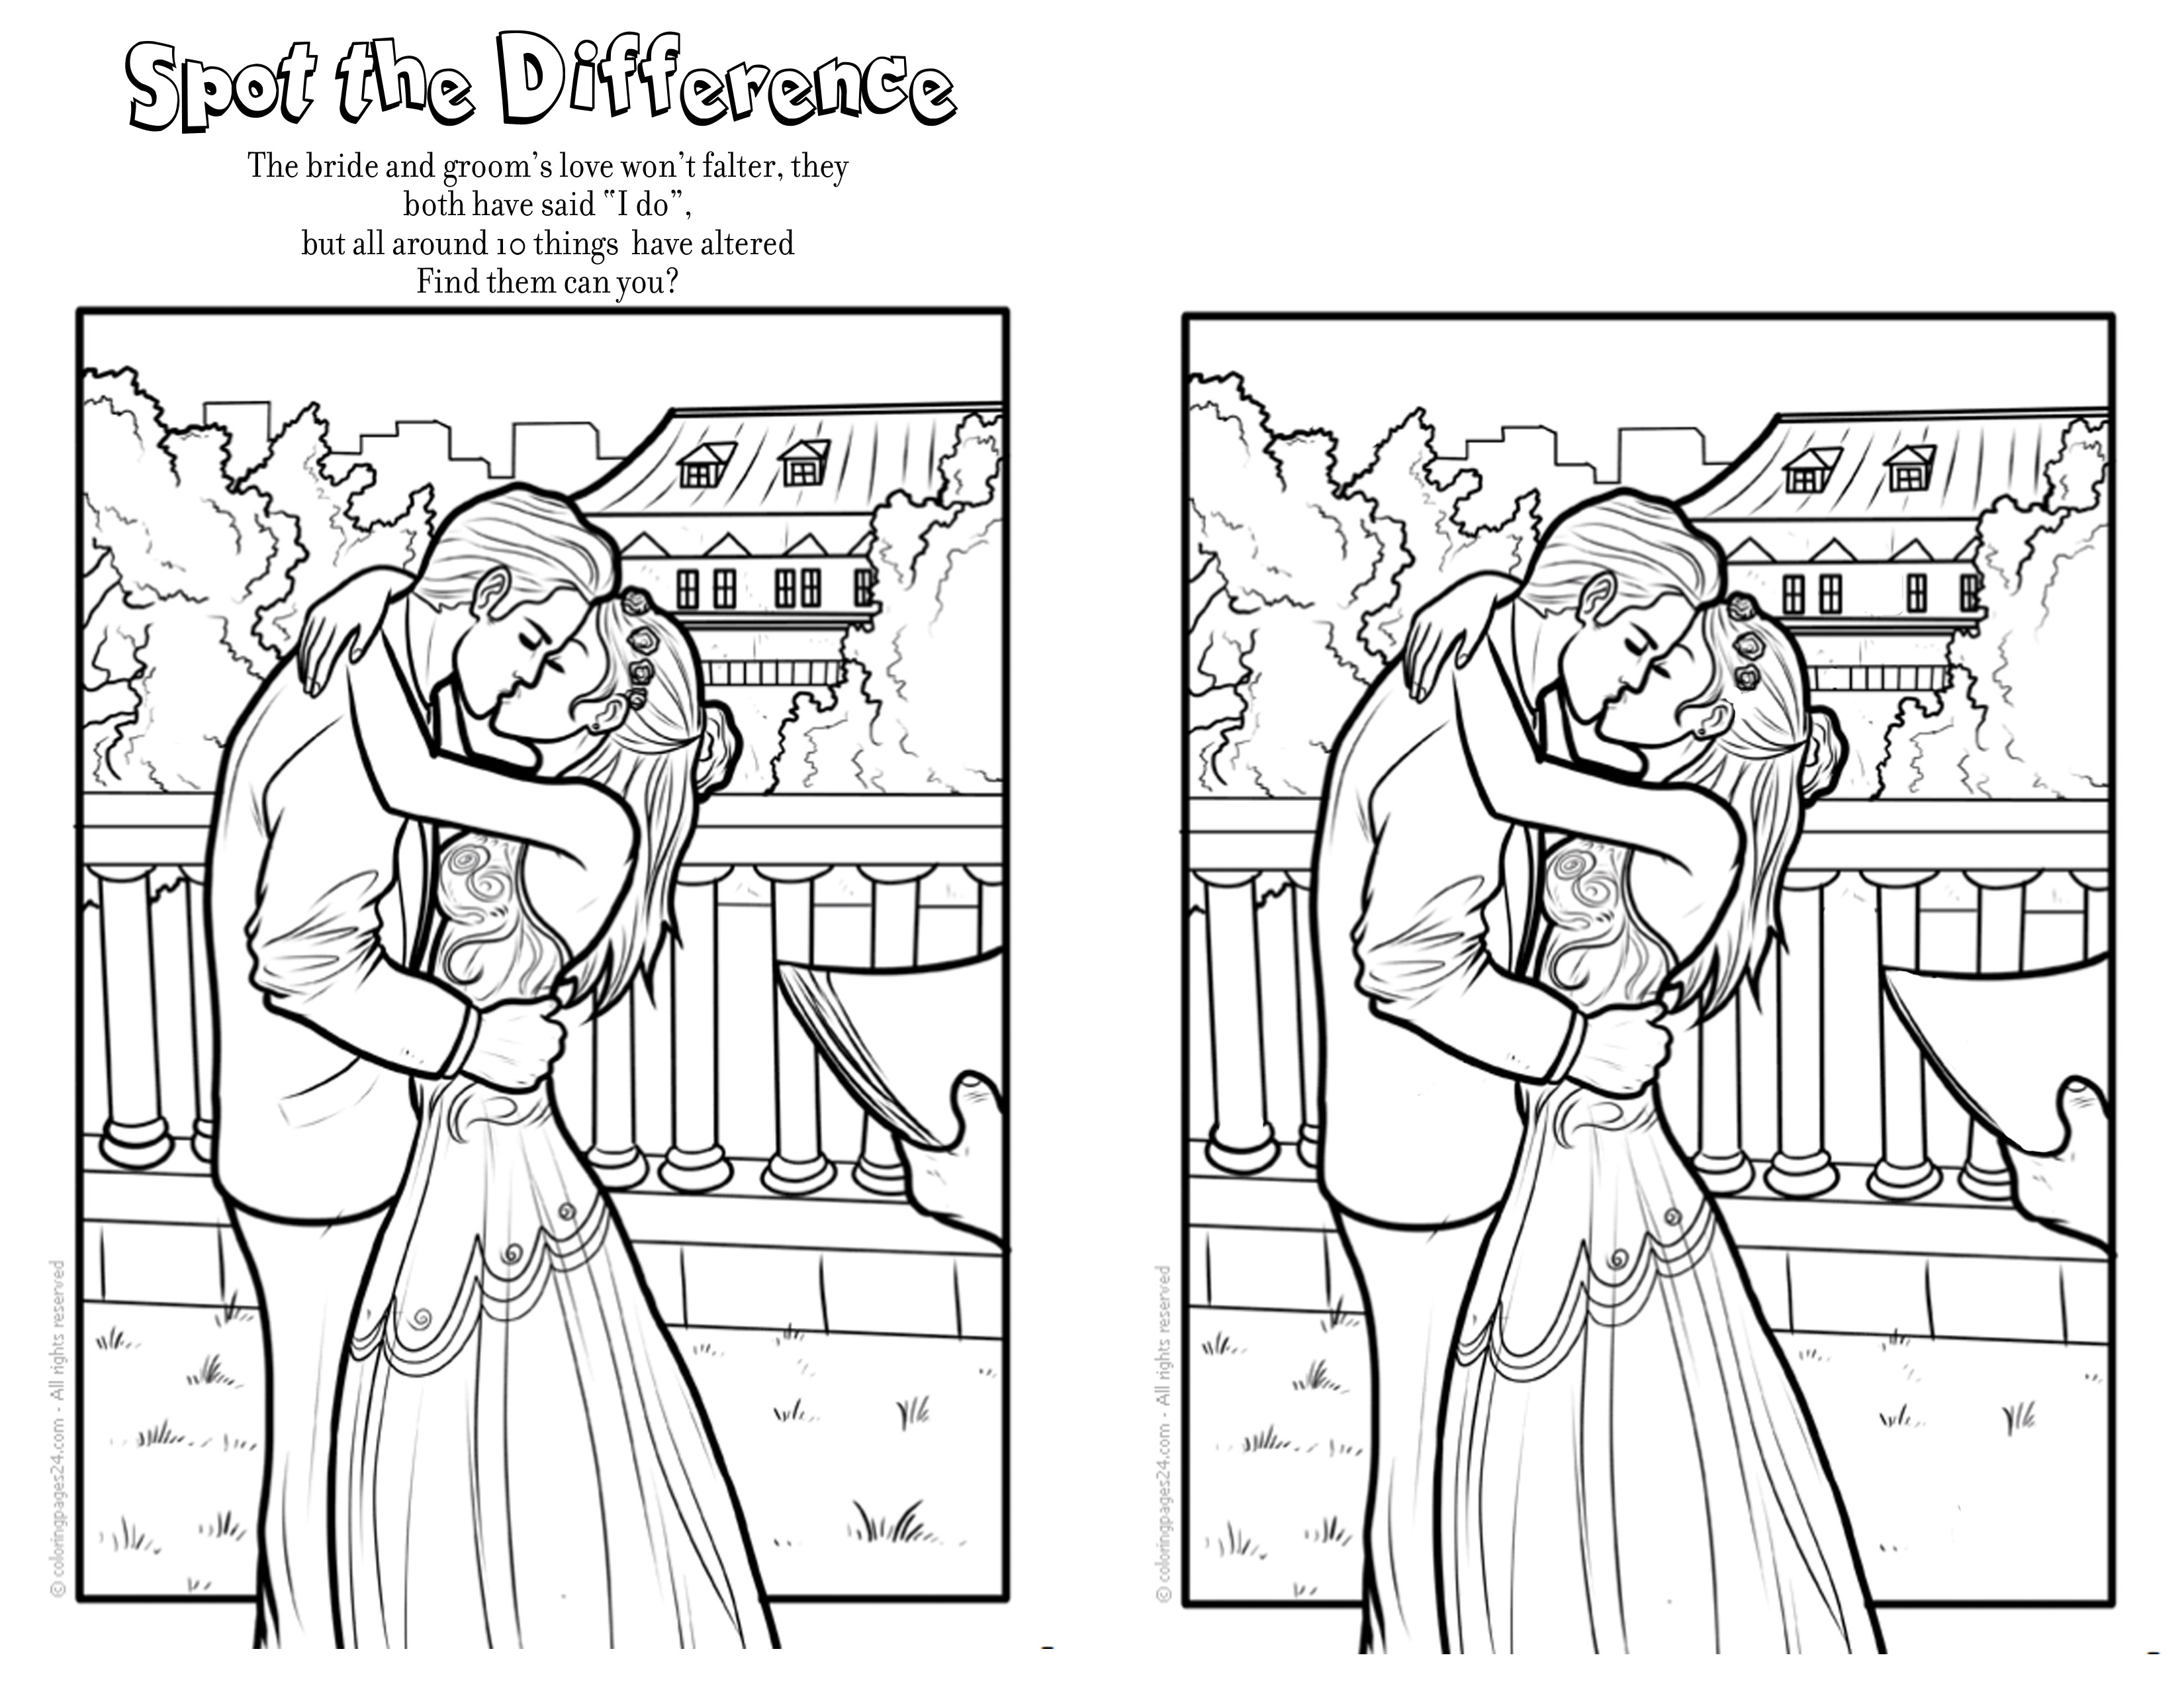 fourth page wedding coloring book free - Wedding Coloring Books